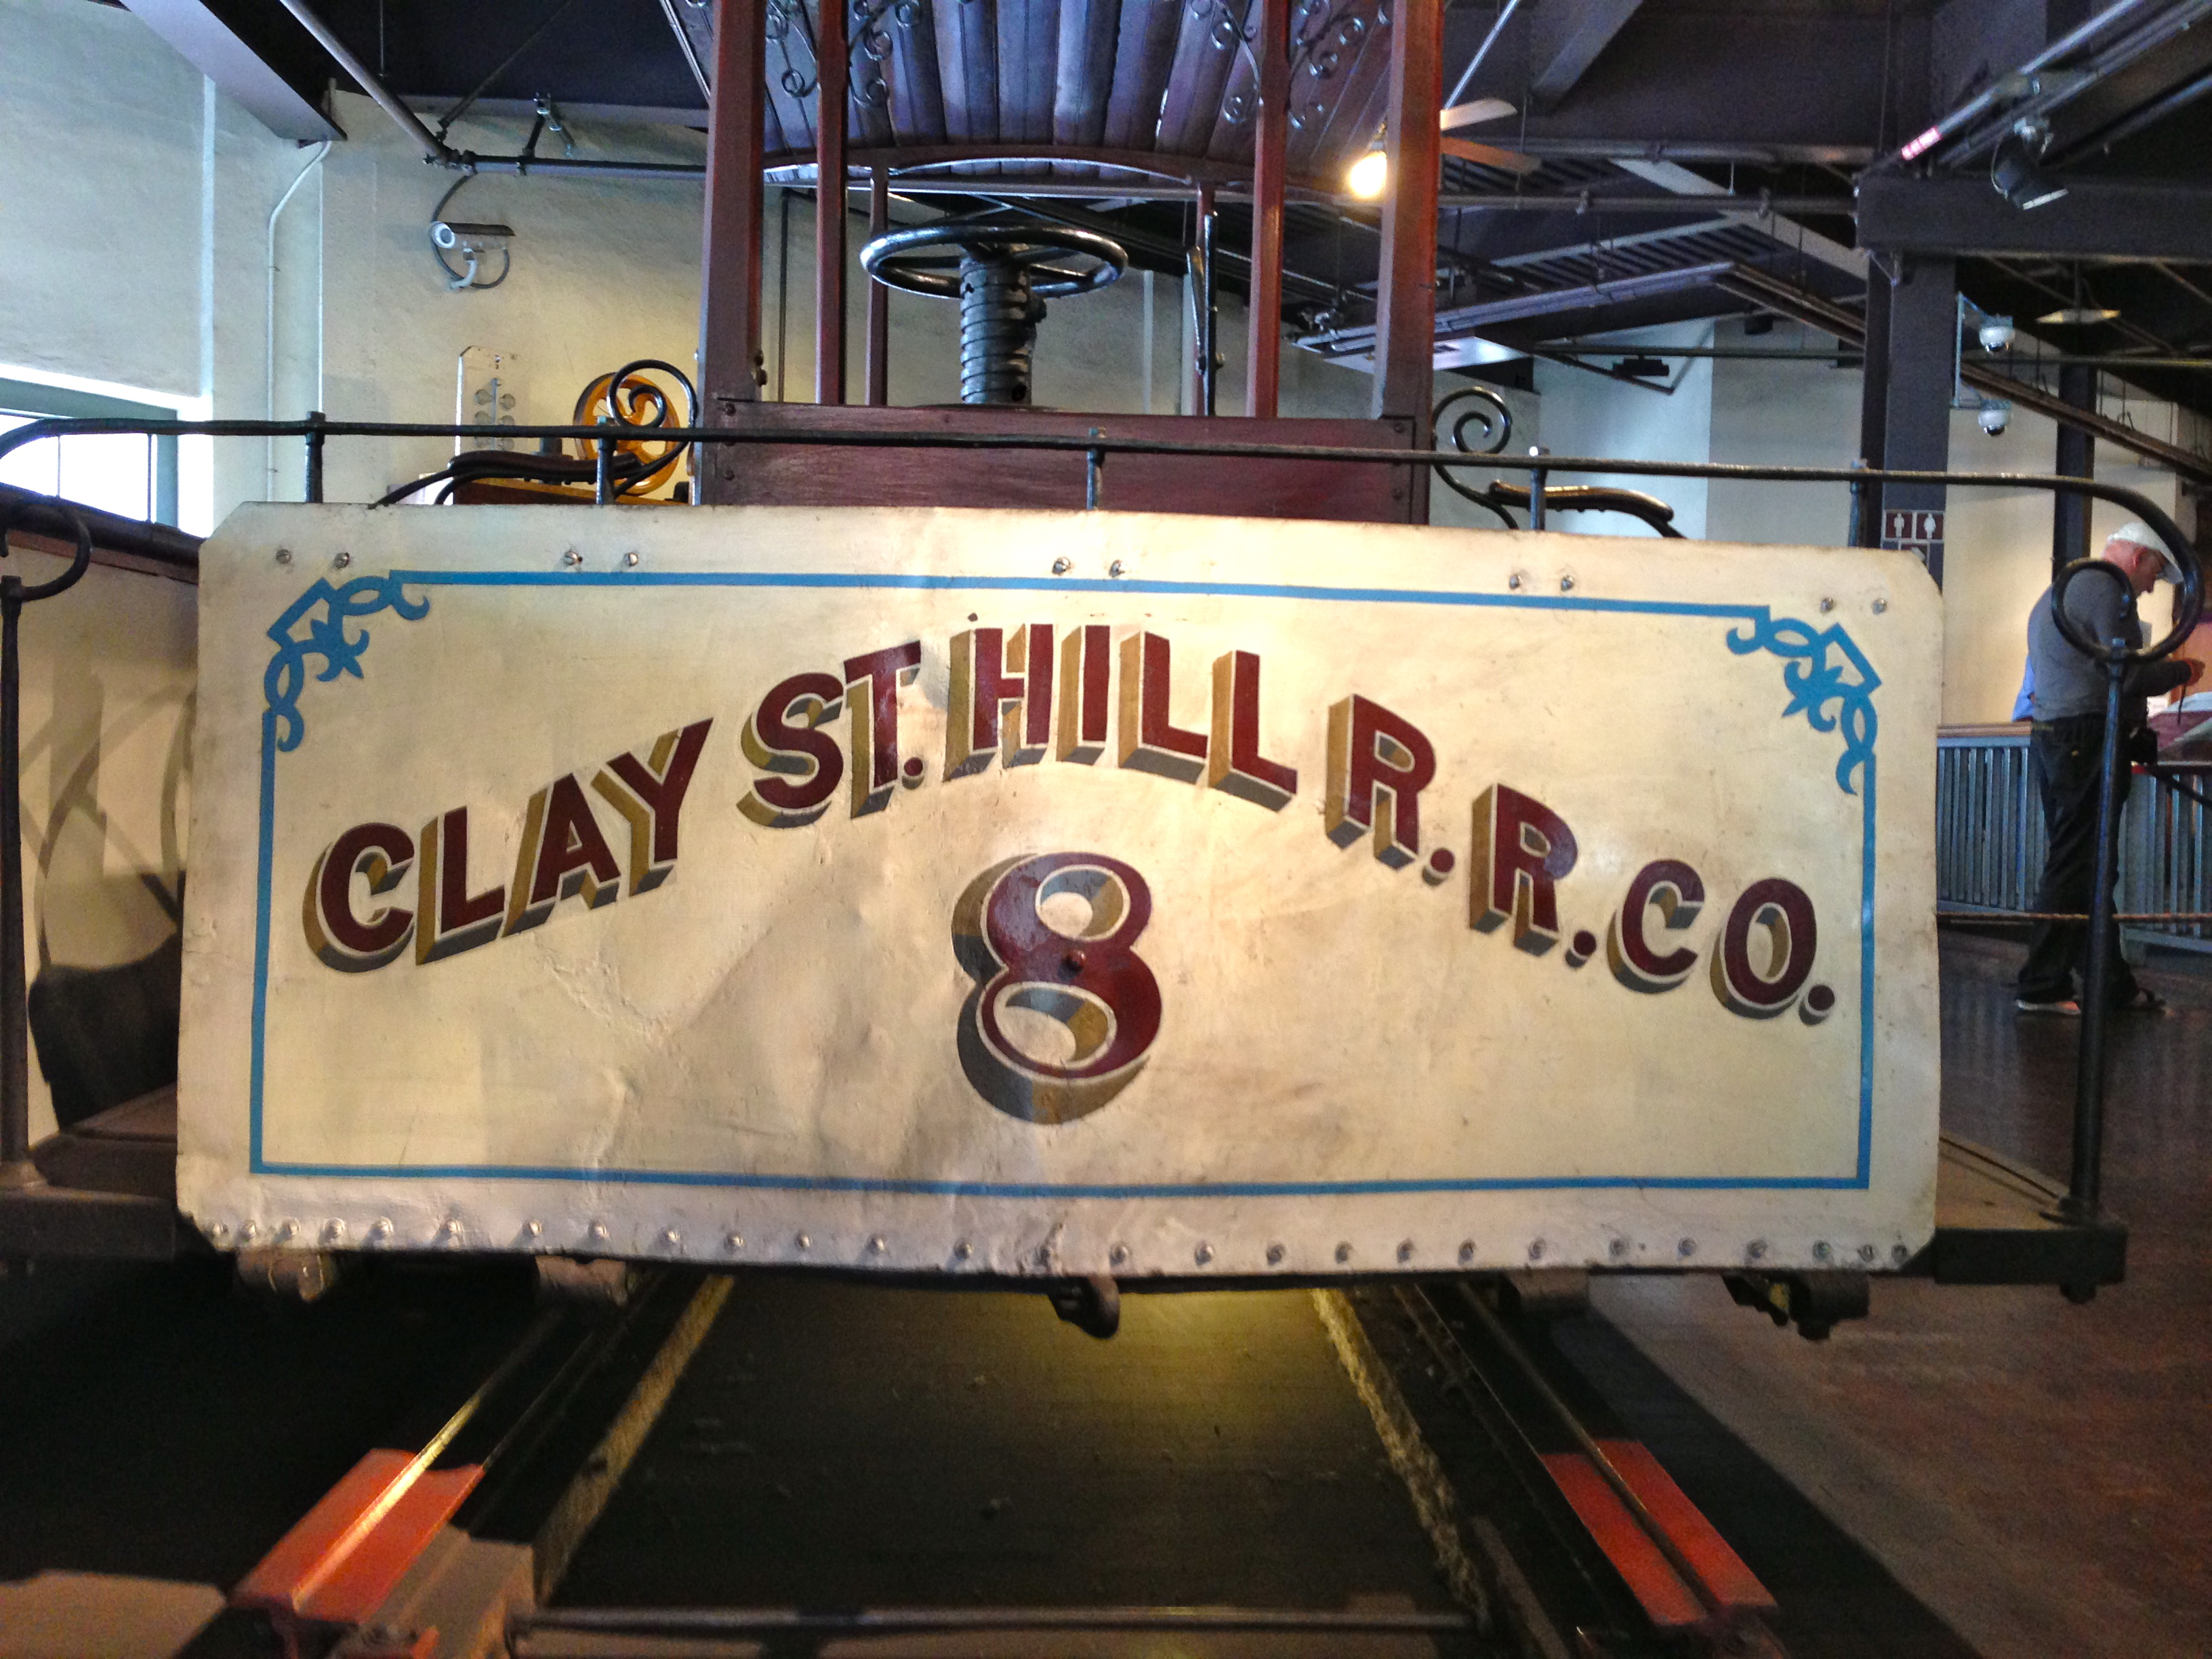 Clay Street Hill Railroad Co.JPG